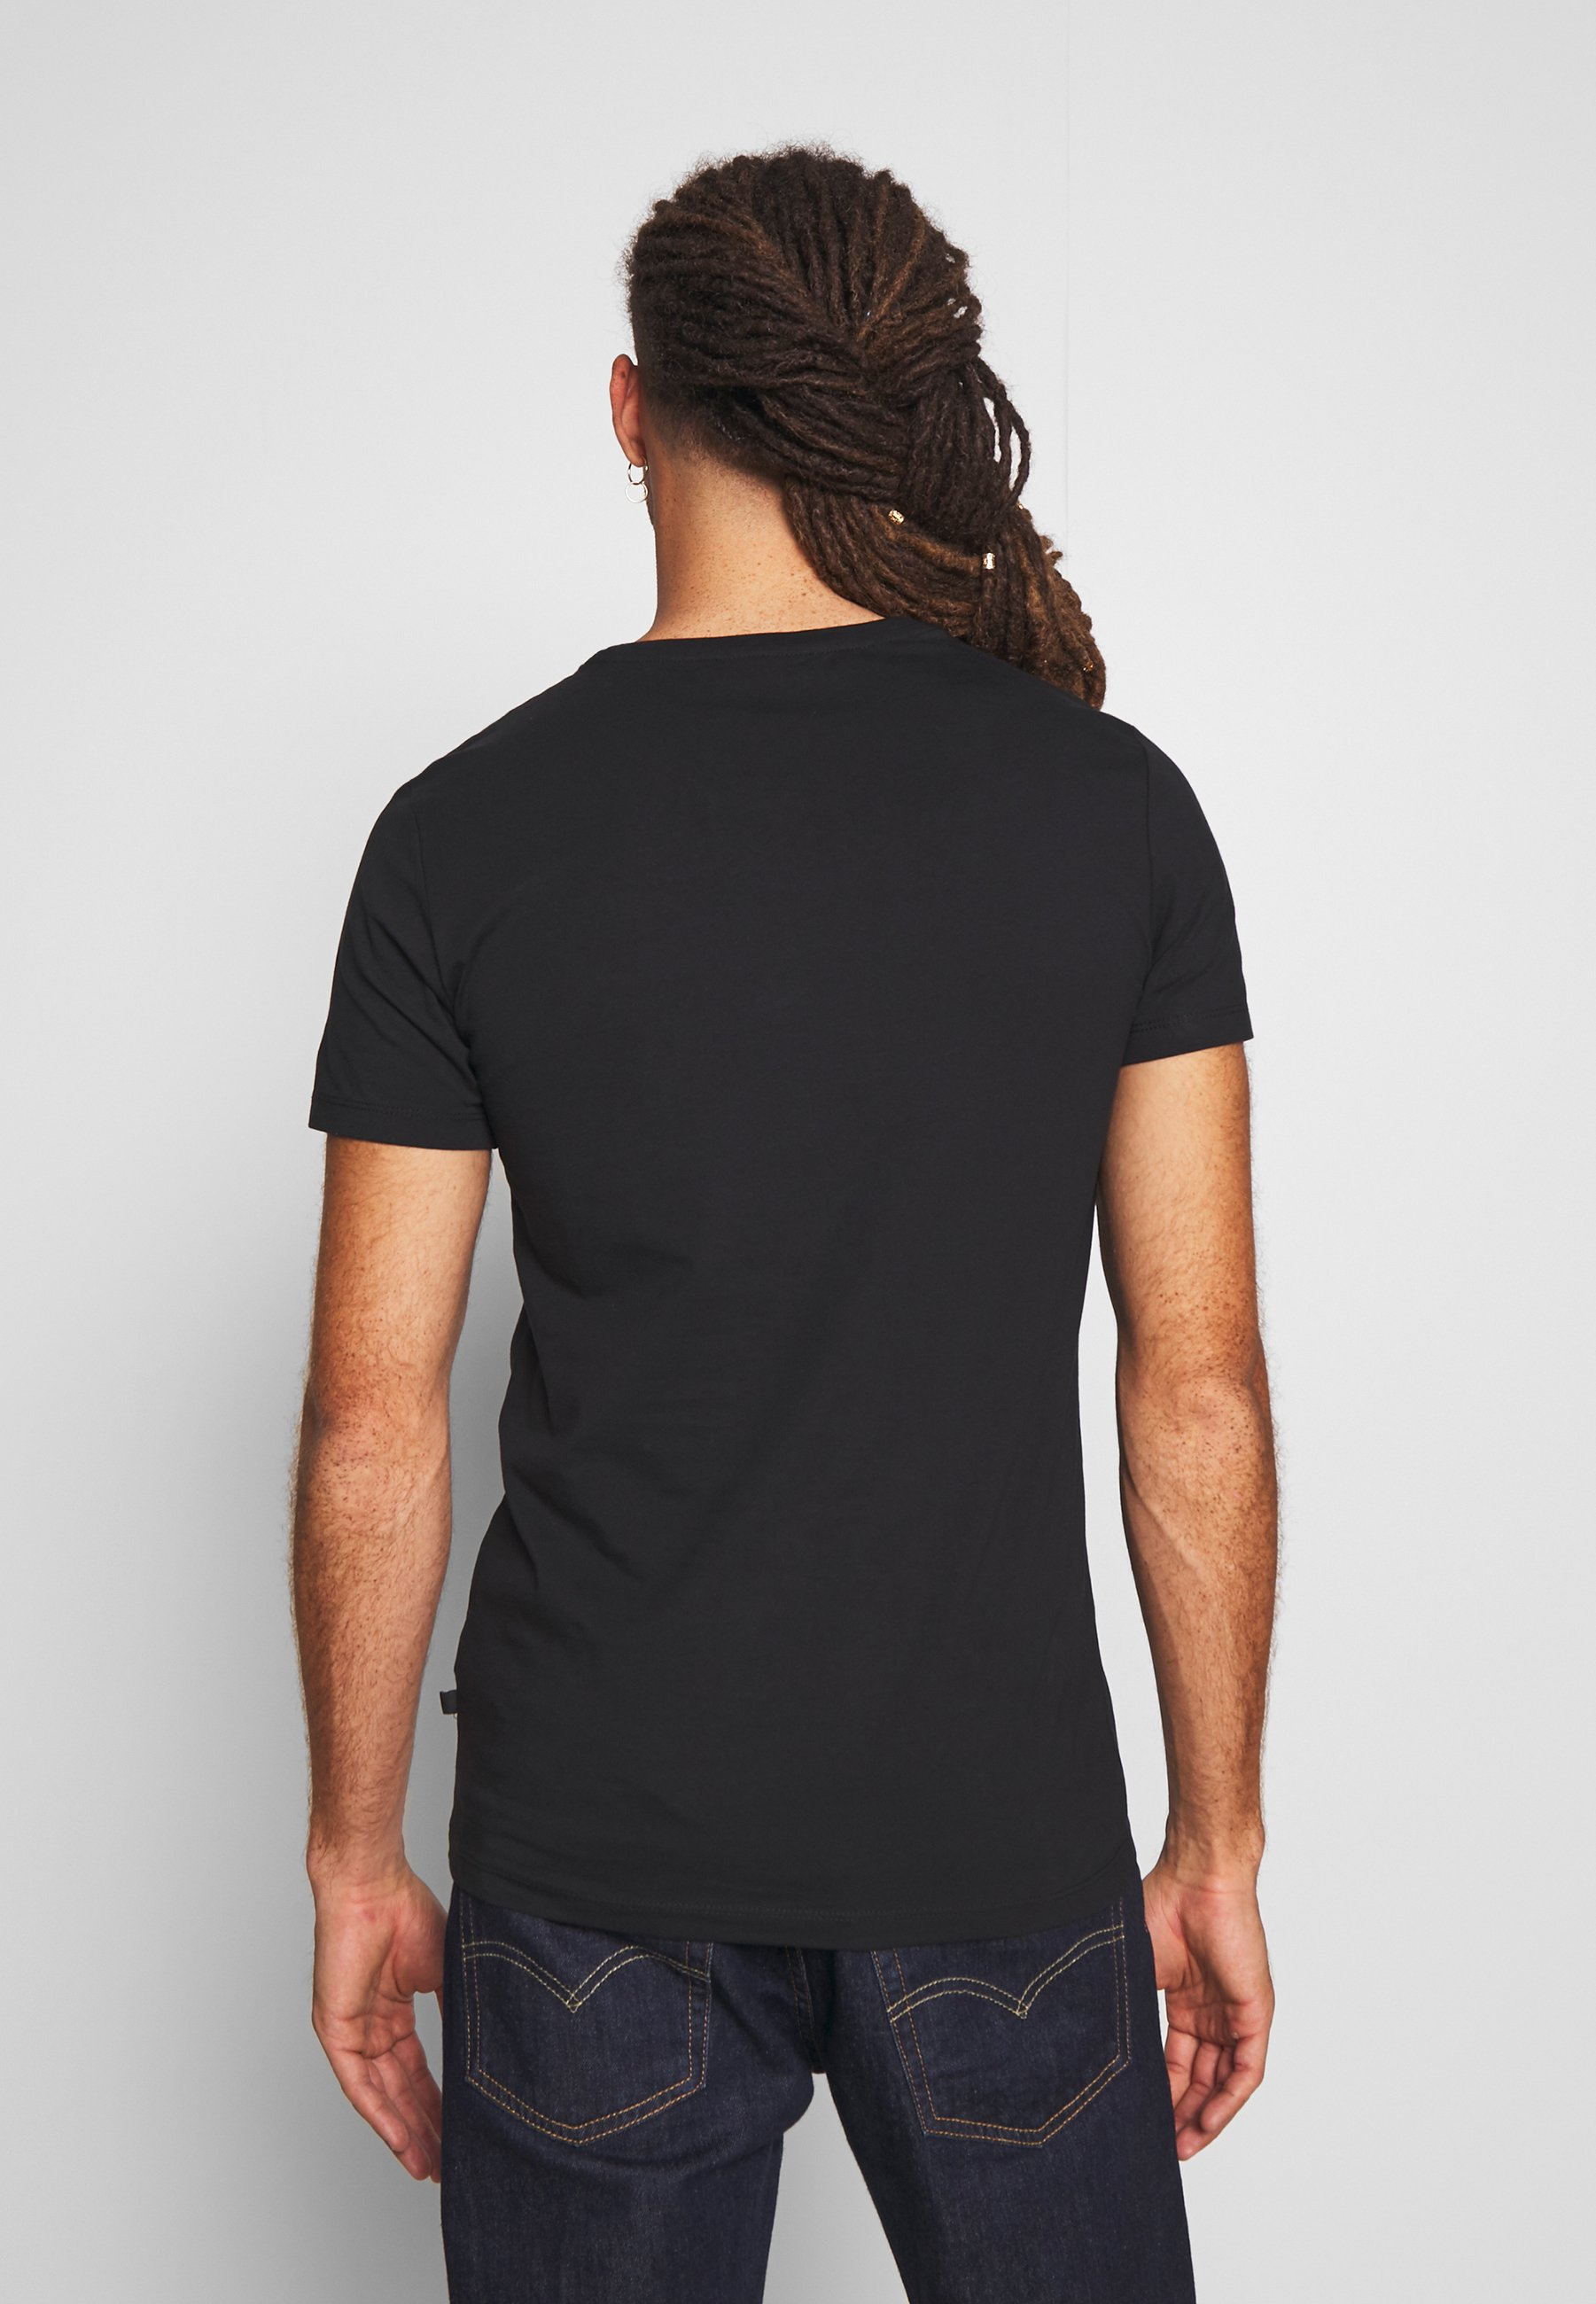 Casual Friday Basic T-shirt - black fnneu